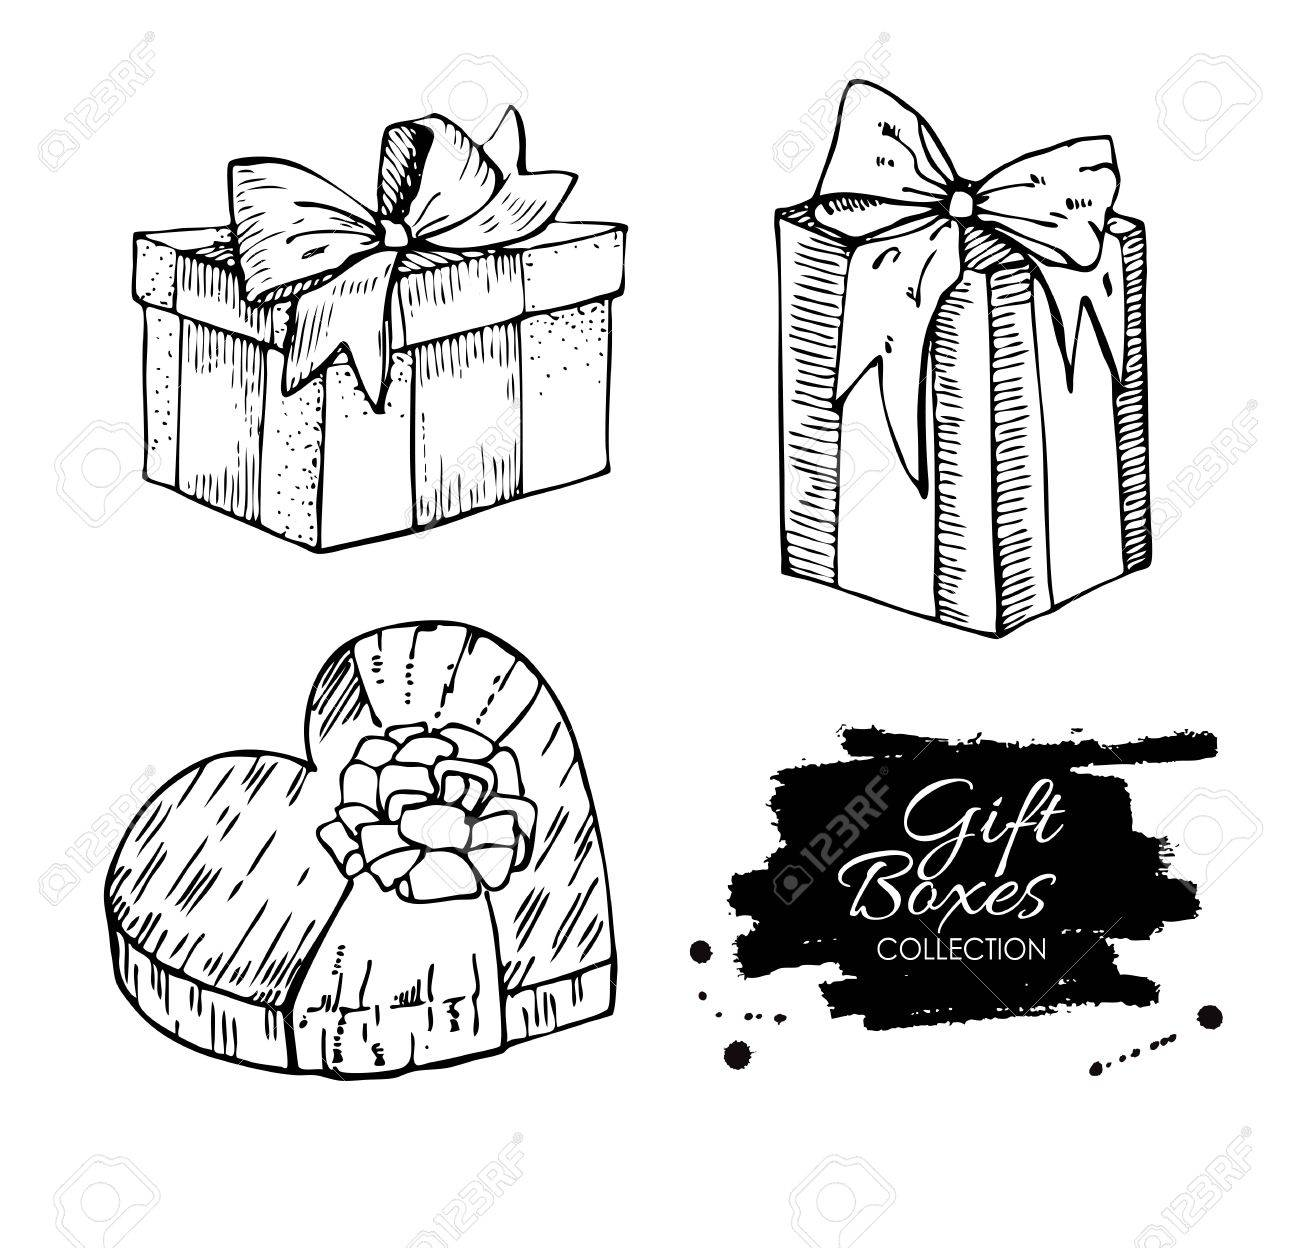 Gift Box Collection Illustrations Great For Birthday Xmas And Valentine Day Stock